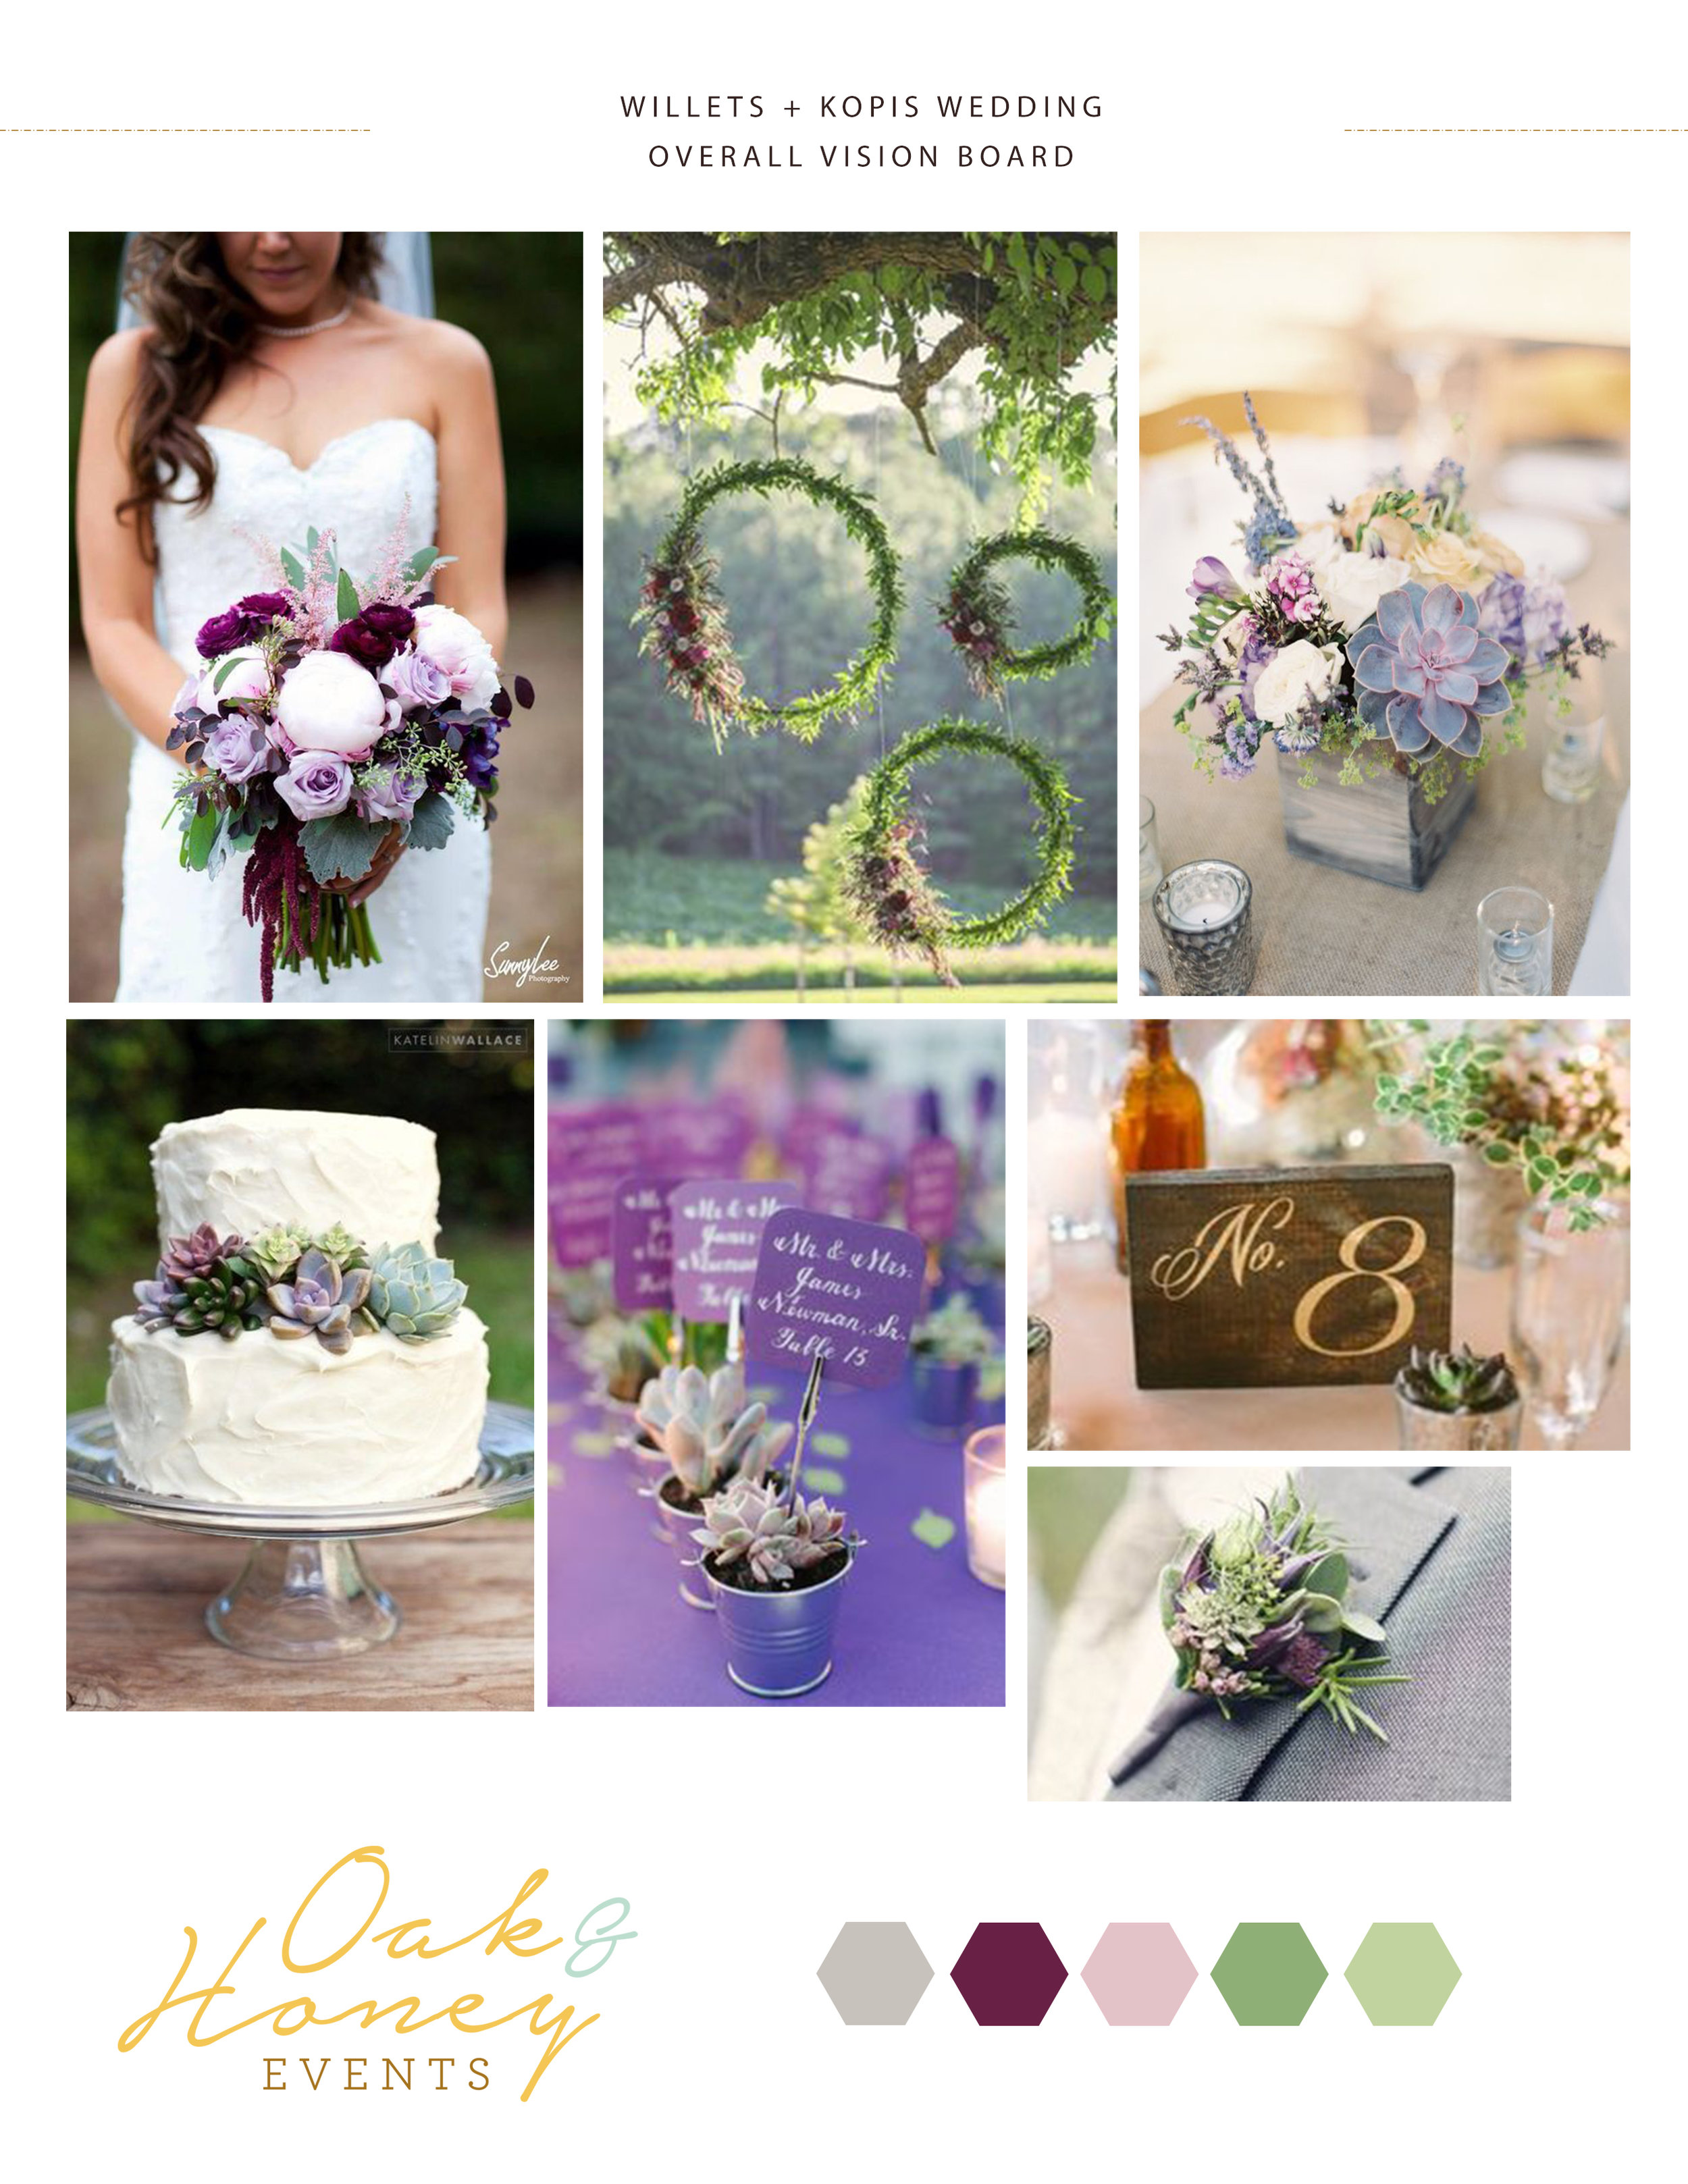 The Inn At Honey Run wedding vision board